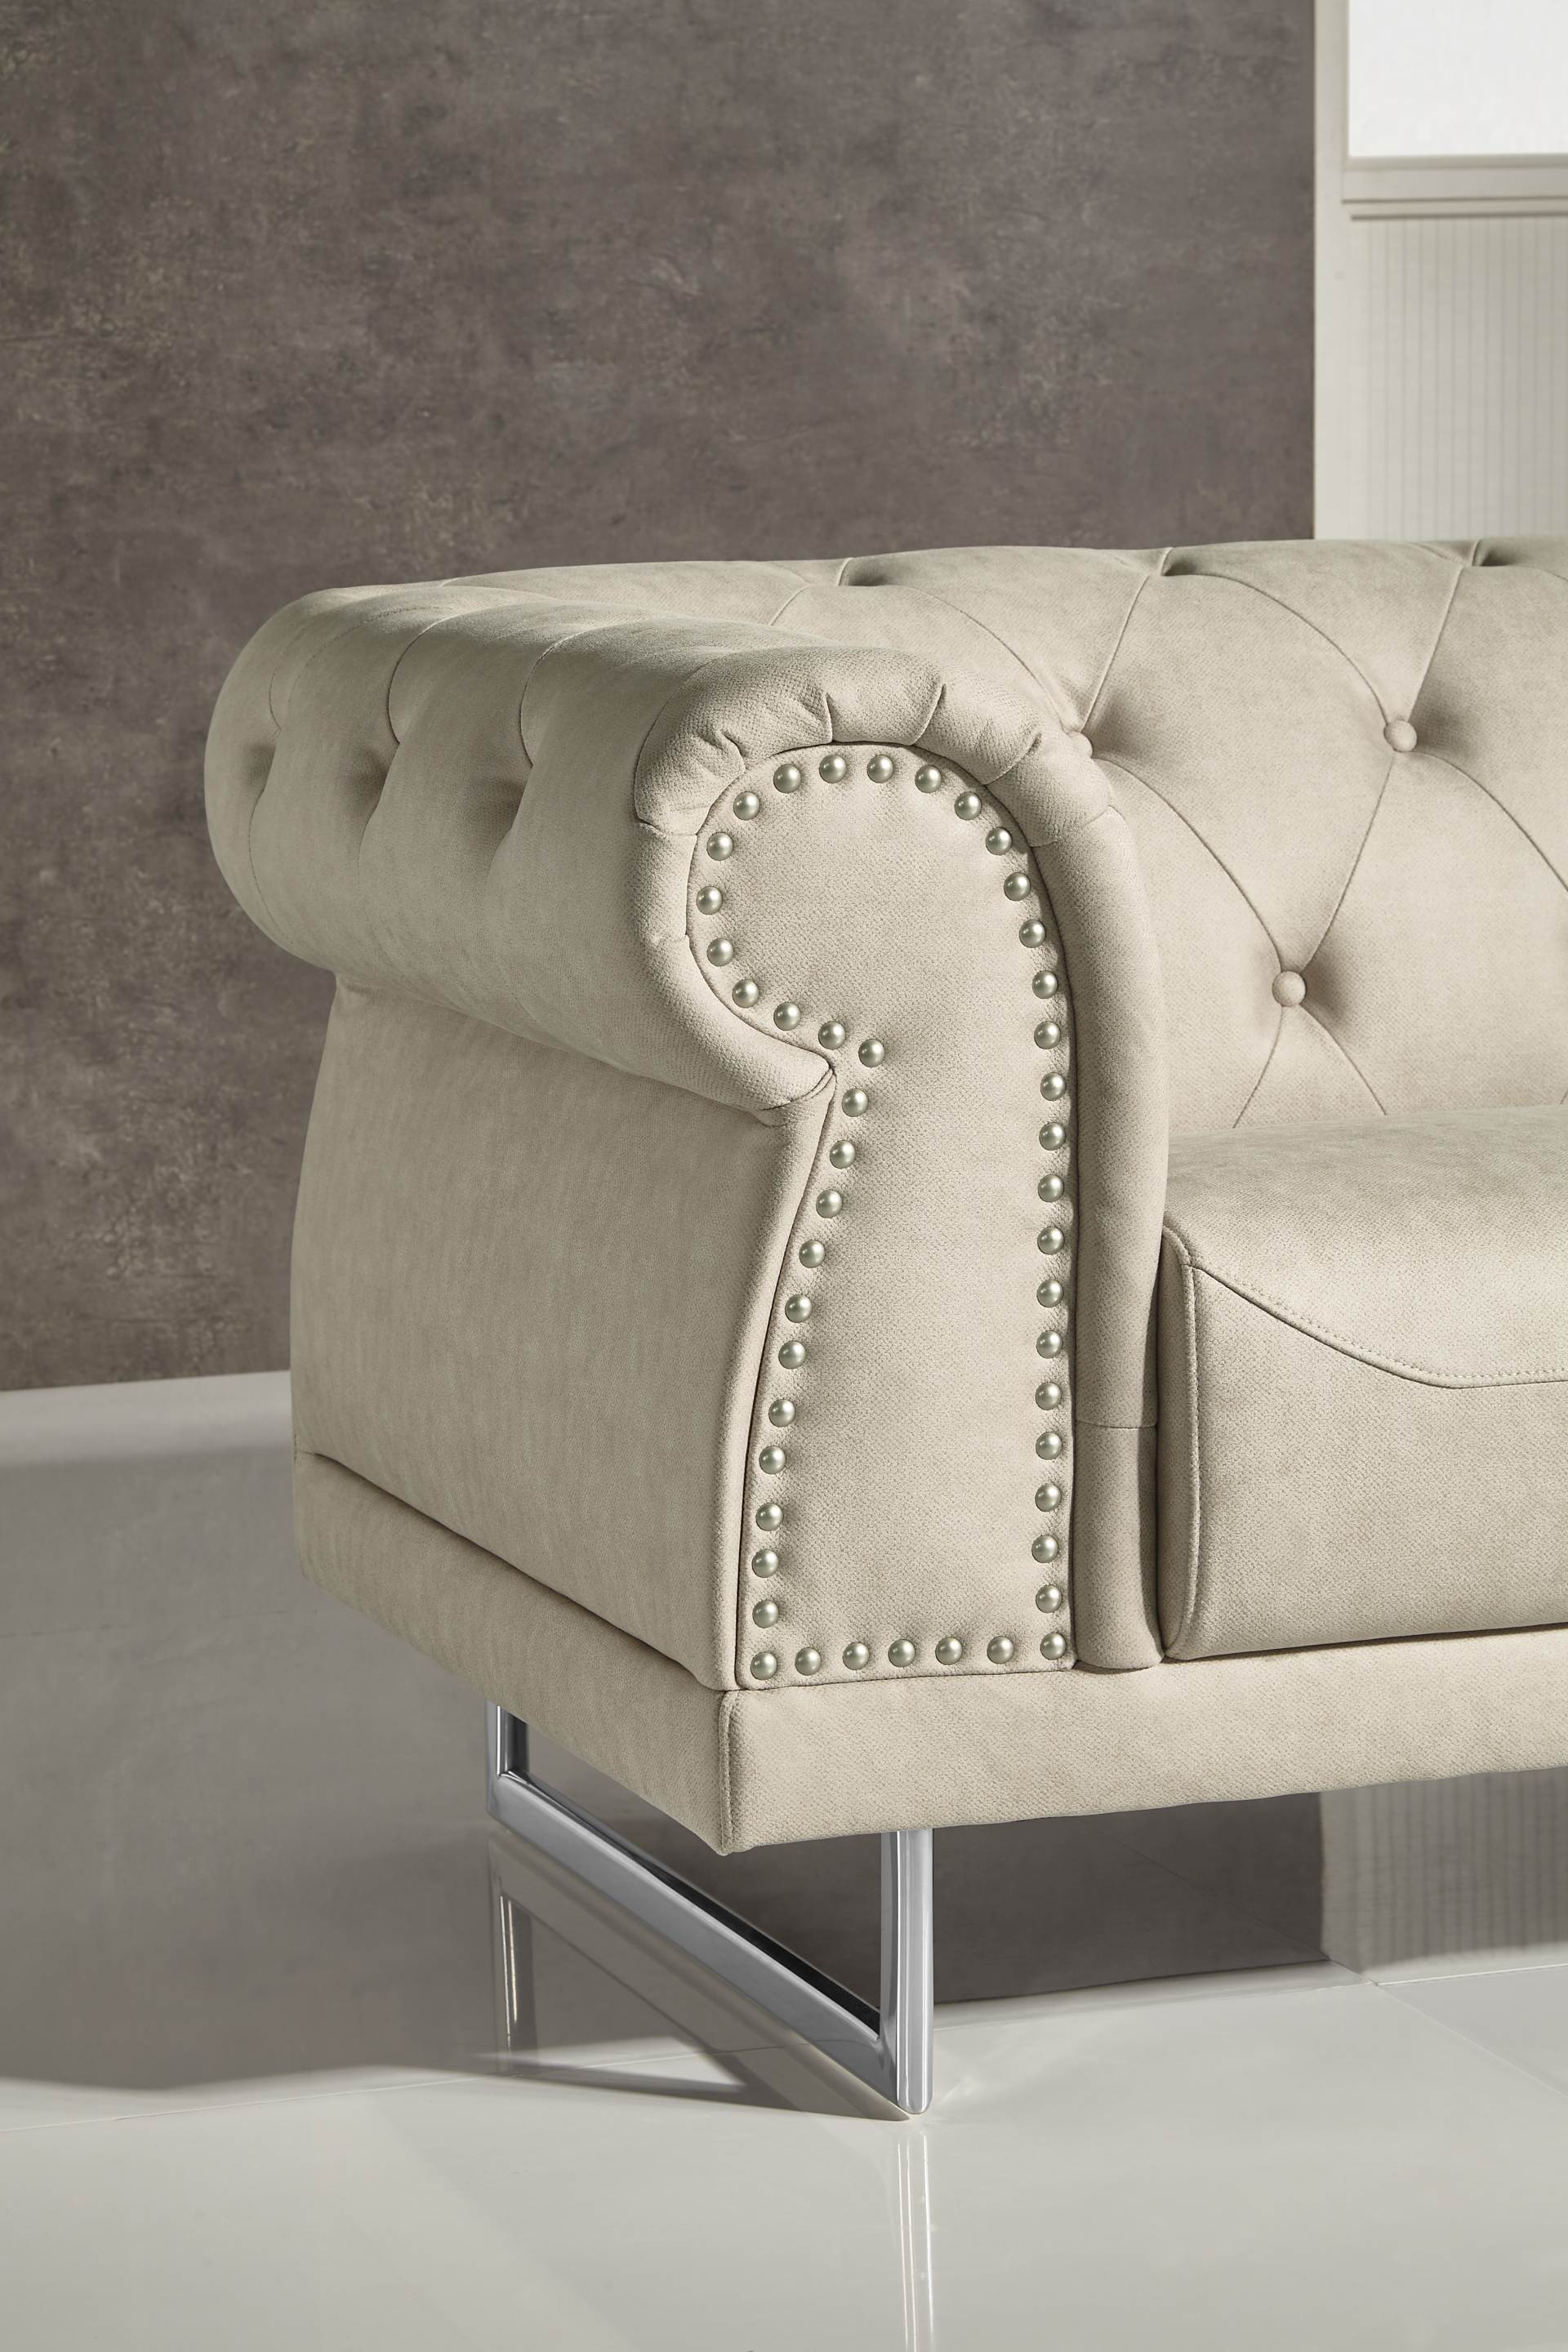 Surprising Mason Designer Sofa Leather Air Code G01 Beige Pabps2019 Chair Design Images Pabps2019Com